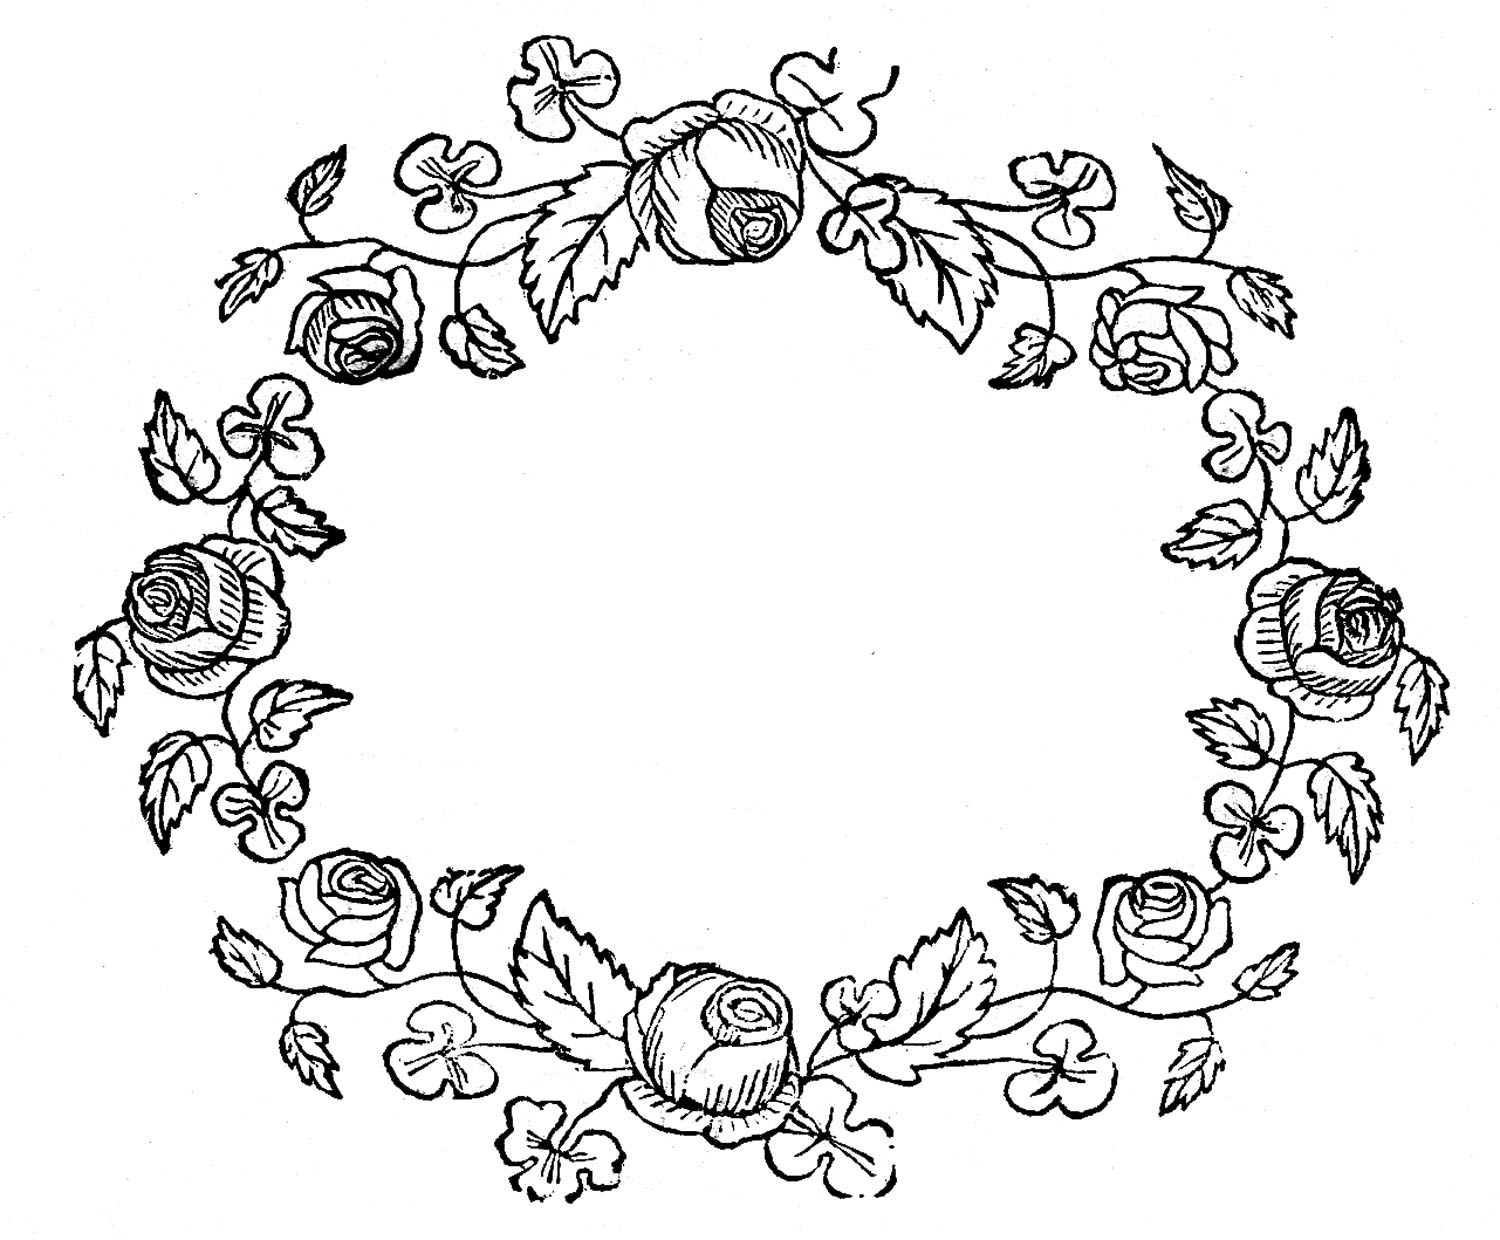 Royalty free wreath clipart black and white clip transparent Royalty Free Images - Rose Wreaths - Embroidery Pattern ... clip transparent